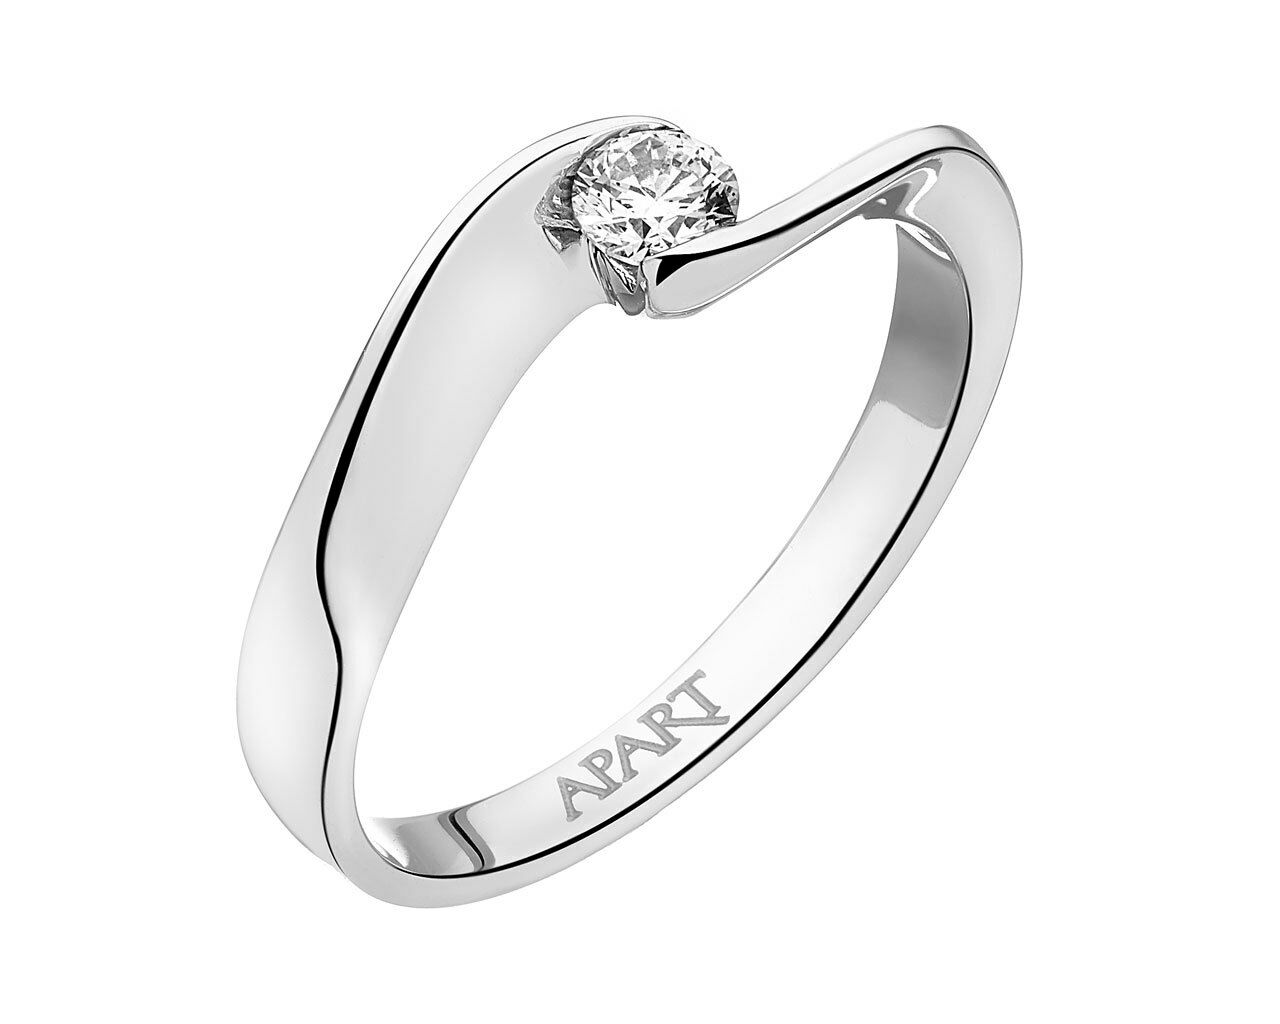 APART  White gold, engagment ring with diamond 0.17ct